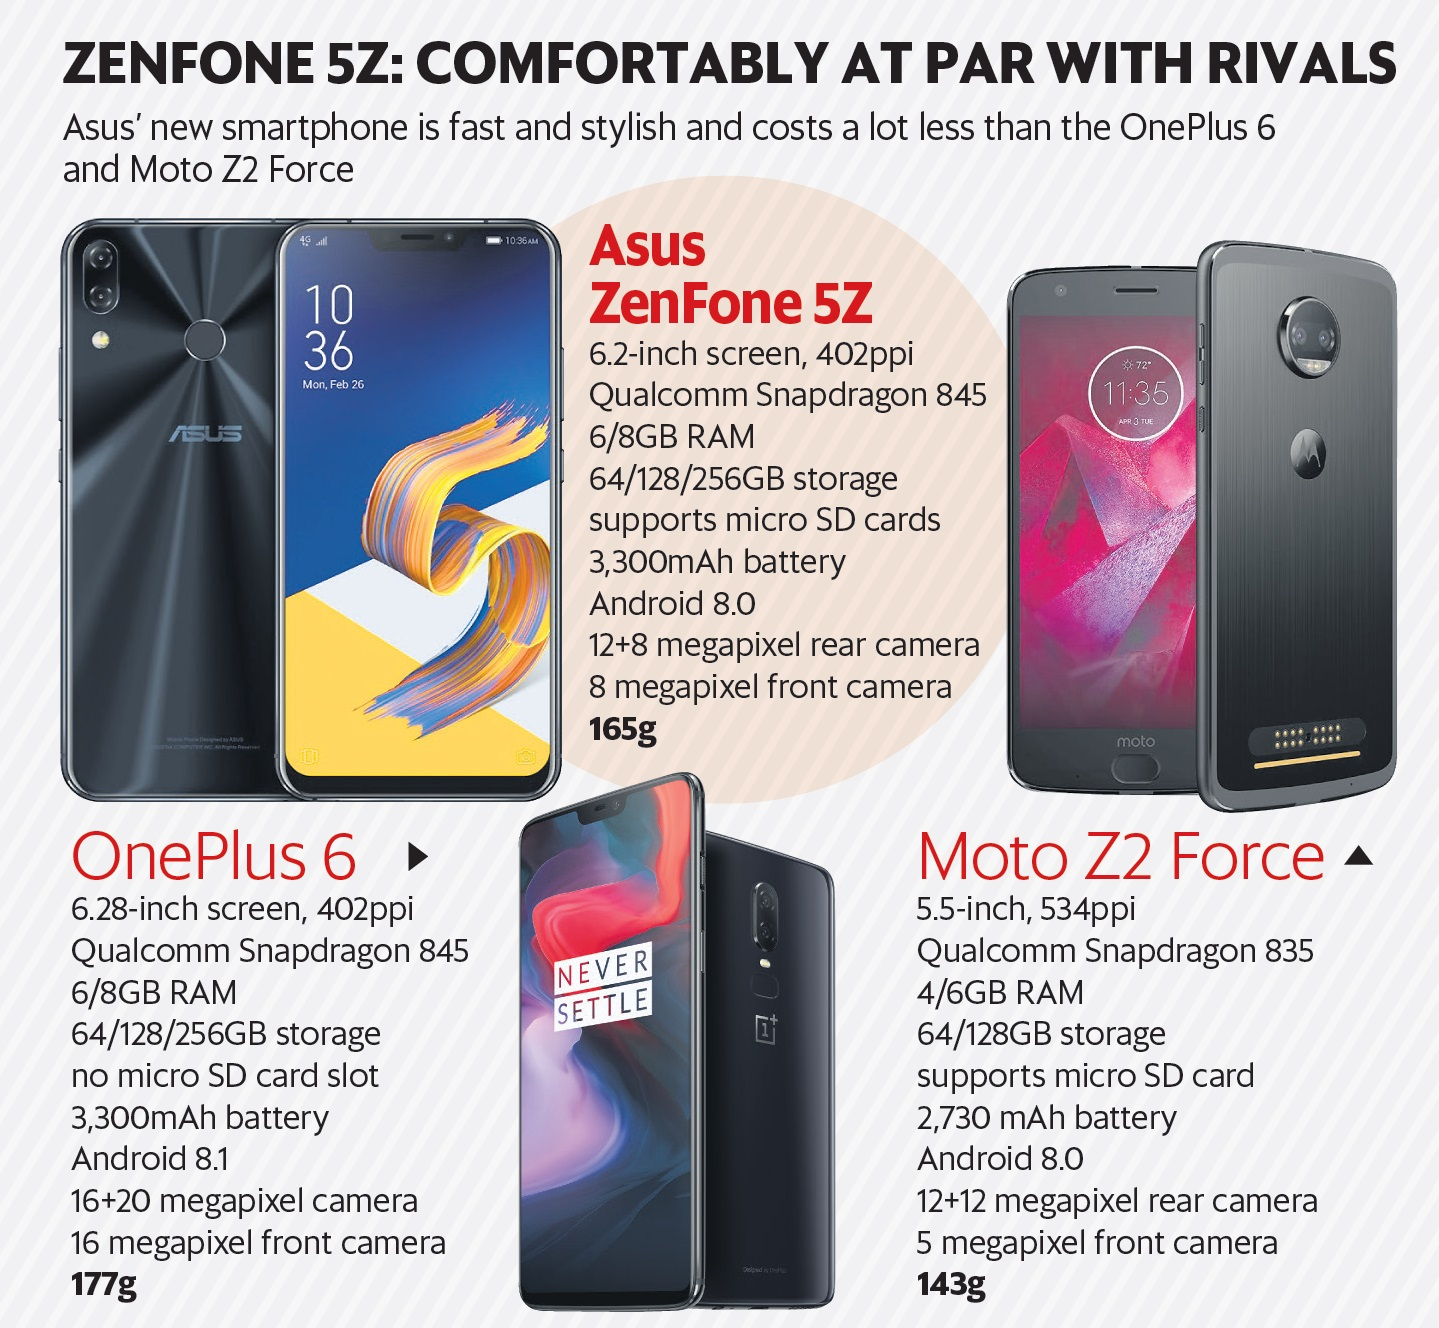 Asus Zenfone 5z Offers A Great Display For Movies And Games Livemint Back Case 6 Performance Powered By Qualcomms Top Of The Line Snapdragon 845 Octa Core Chipset With Latest Adreno 630 Graphics Up To 8gb Ram